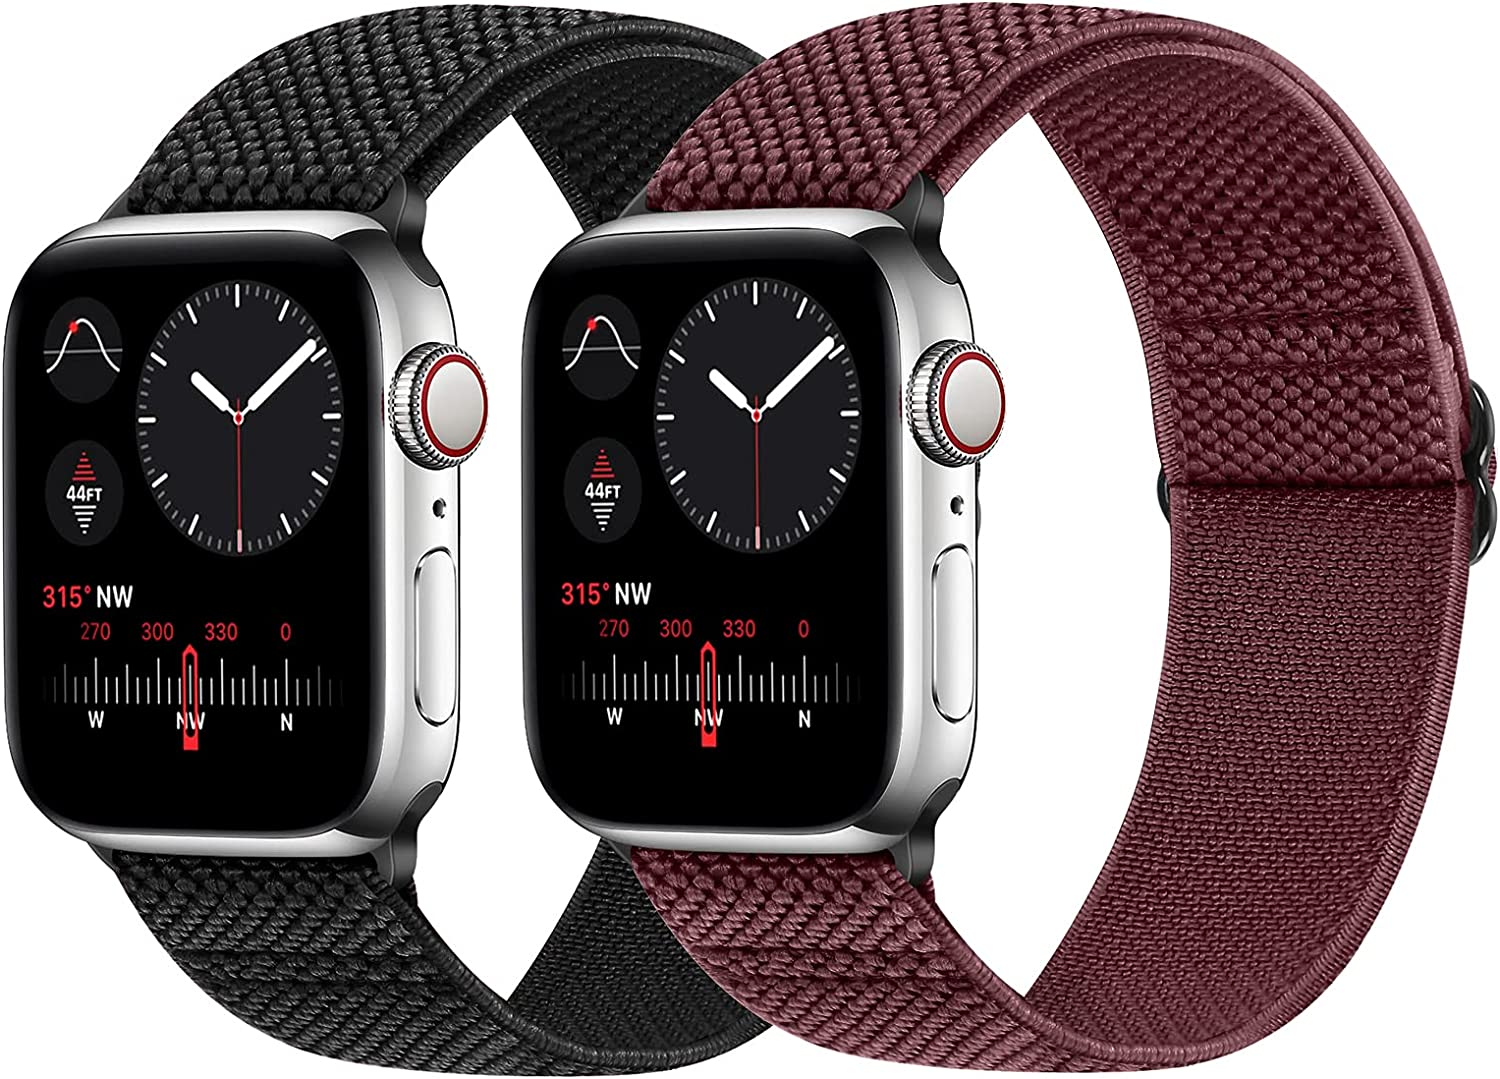 WNIPH Stretchy Adjustable Sport Bands Compatible with Apple Watch 38mm 40mm 42mm 44mm, Elastic Nylon Braided Solo Loop Replacement Wristband for iWatch Series 6/5/4/3/2/1/SE